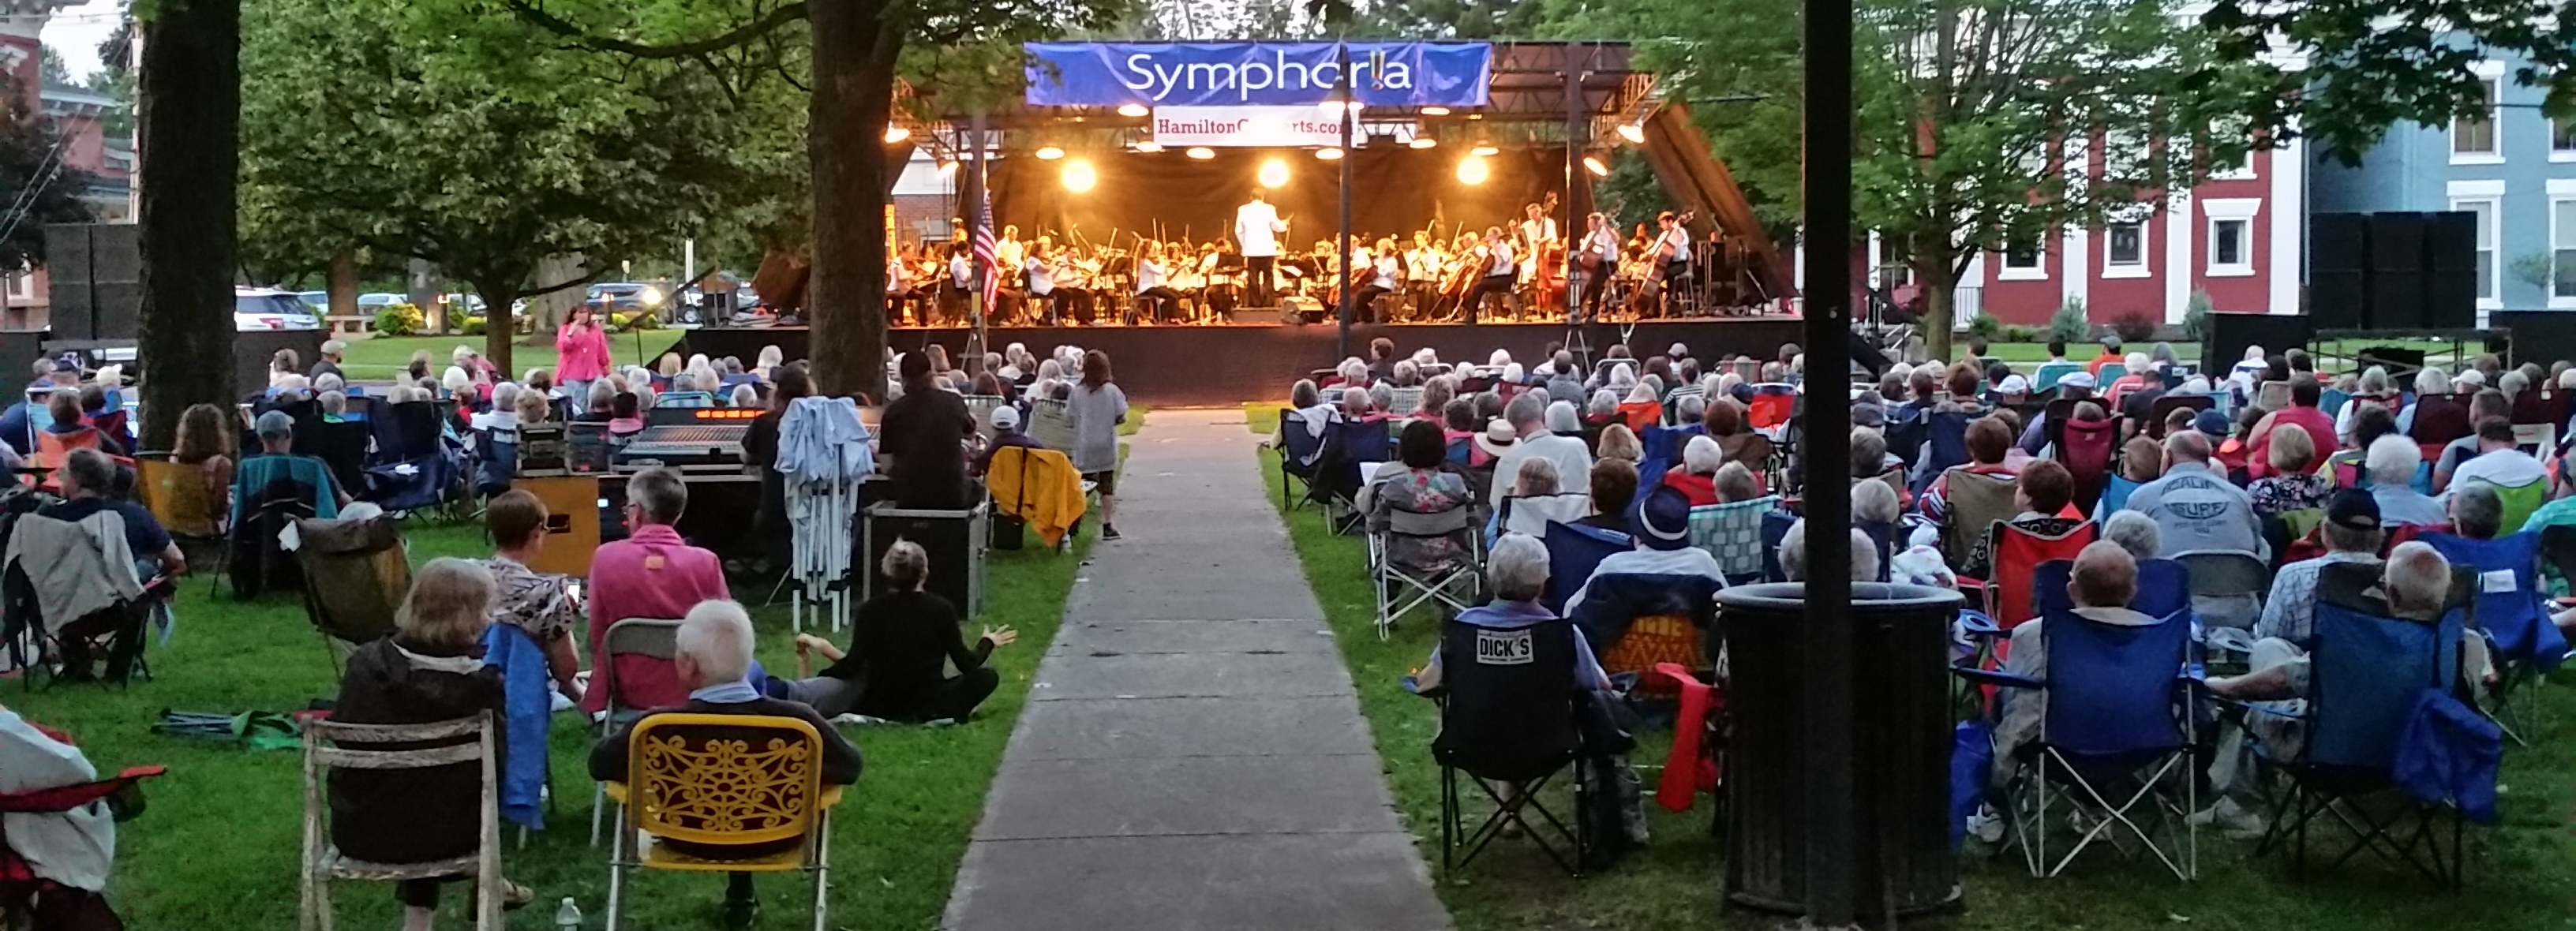 2017-07-06 Symphor!a Concert Crowd